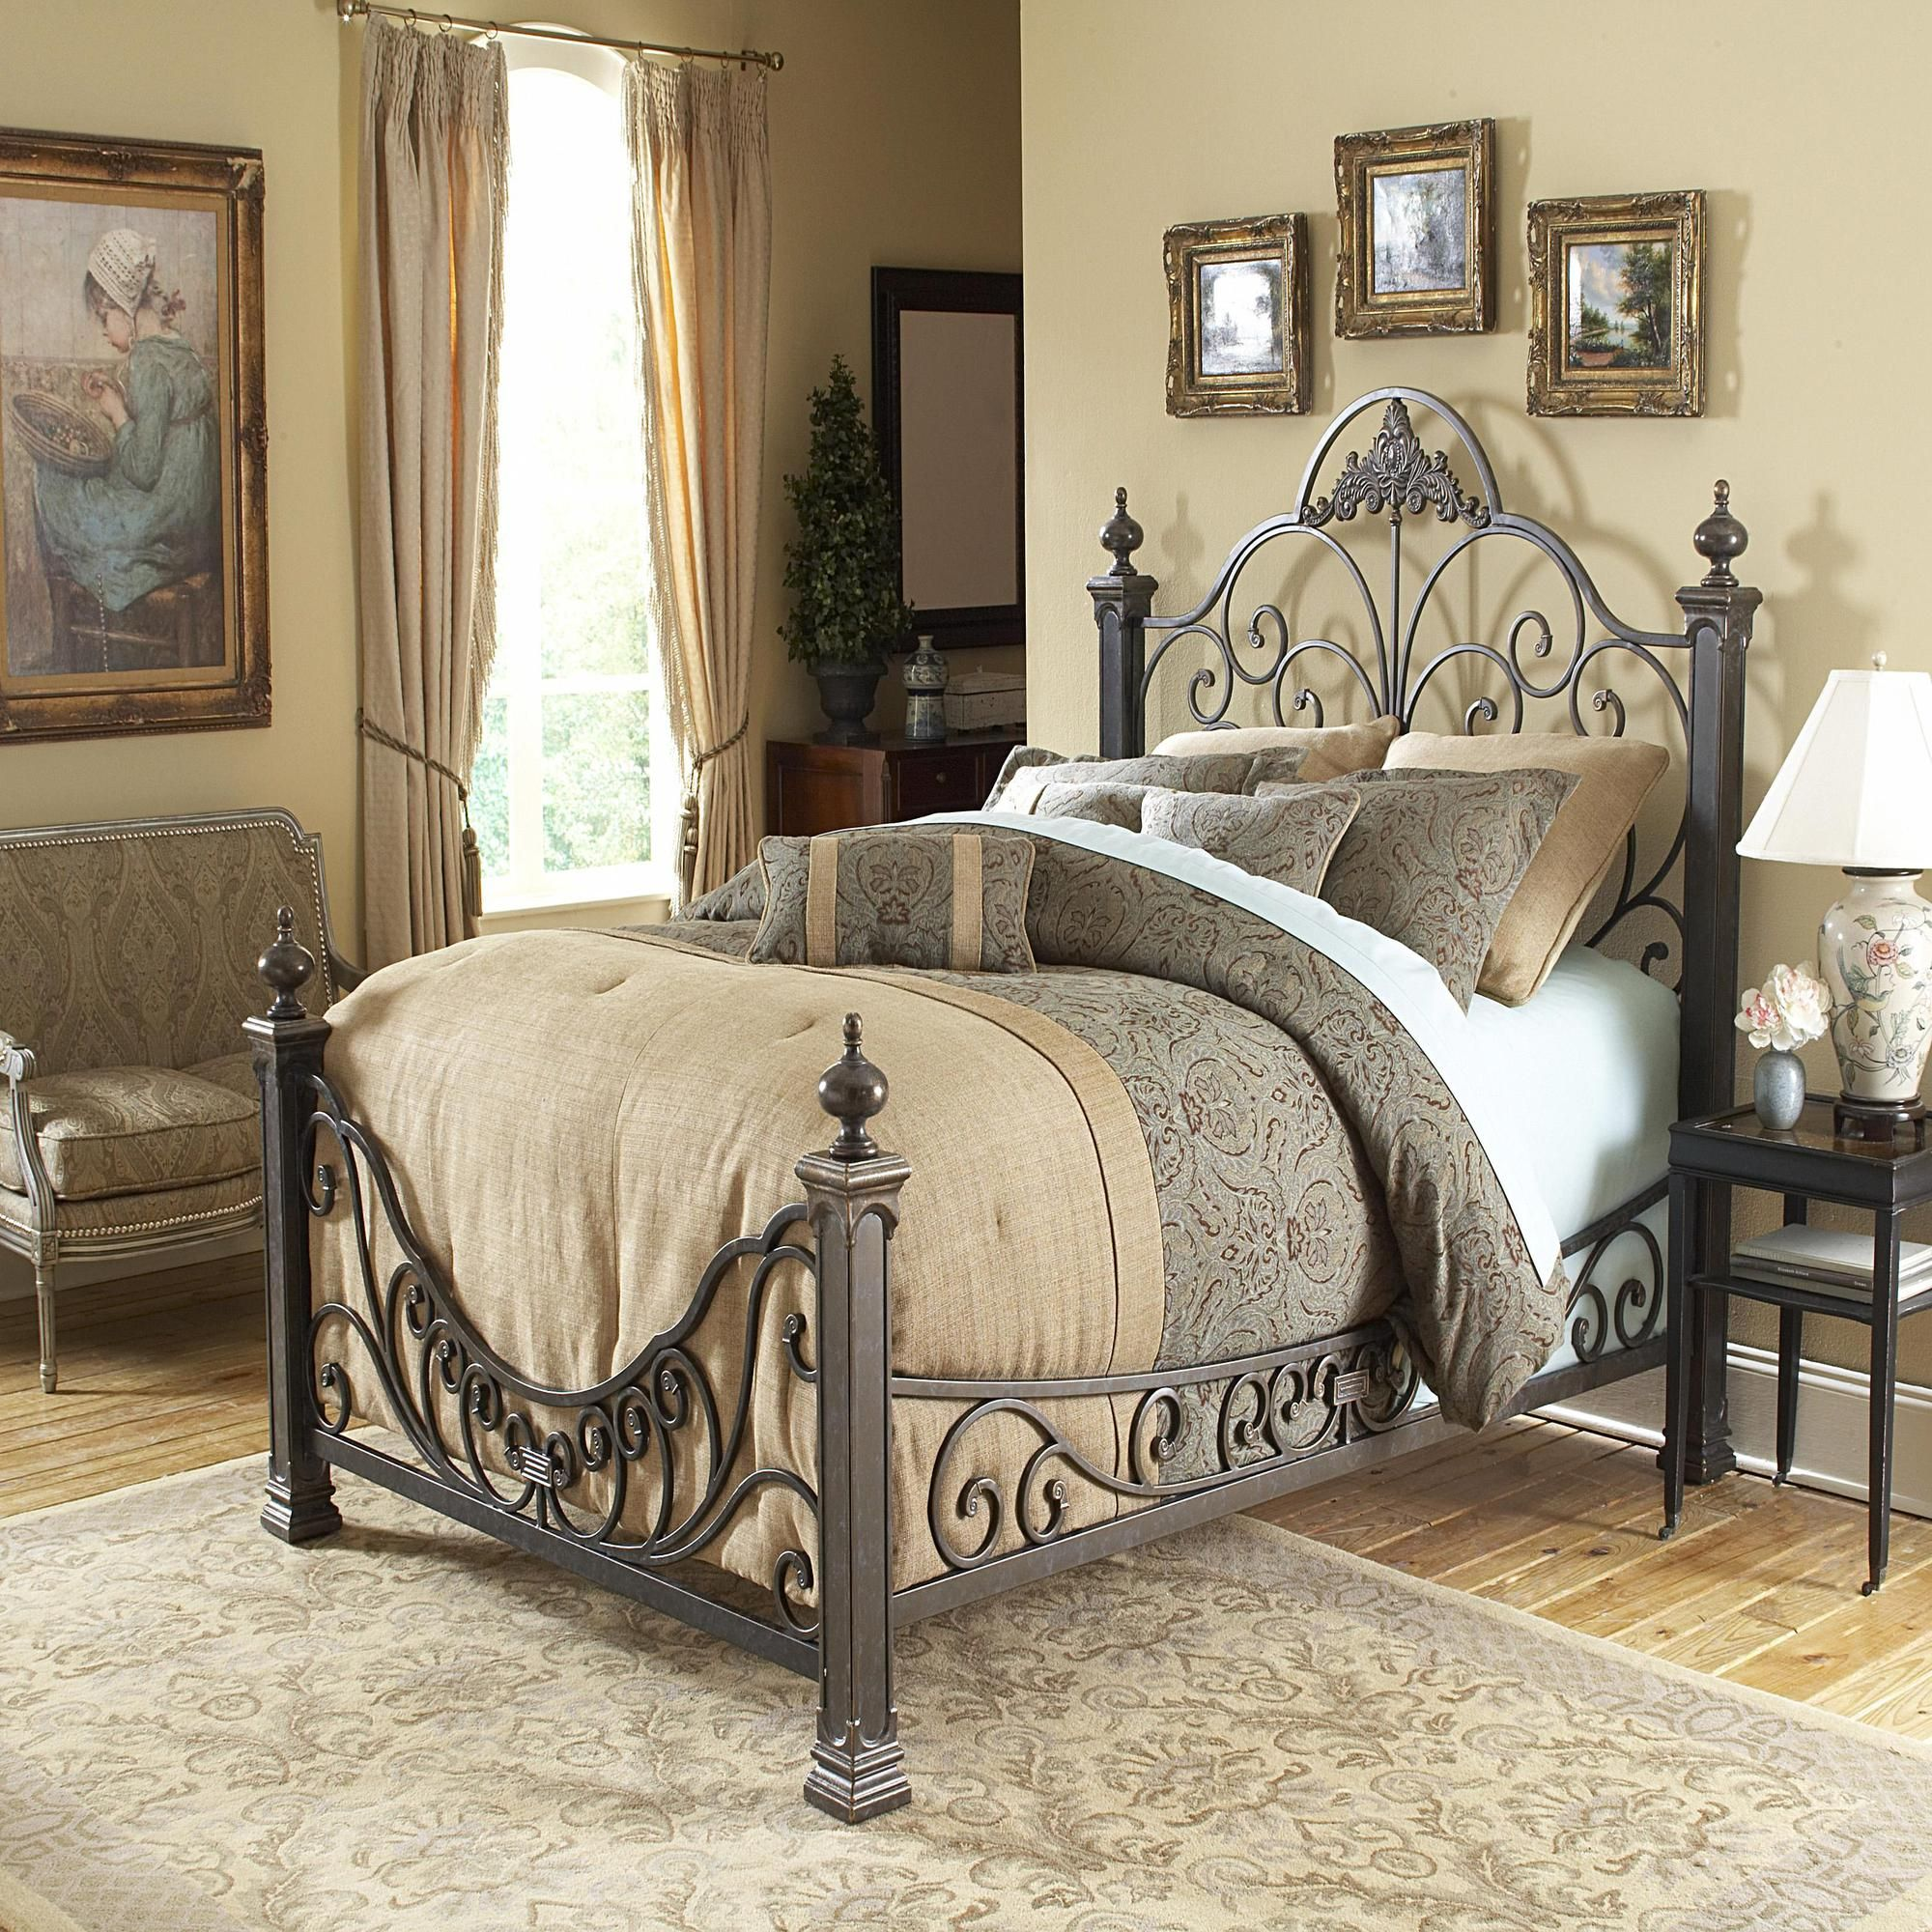 I love these beds! Bed styling, Baroque bed, Iron bed